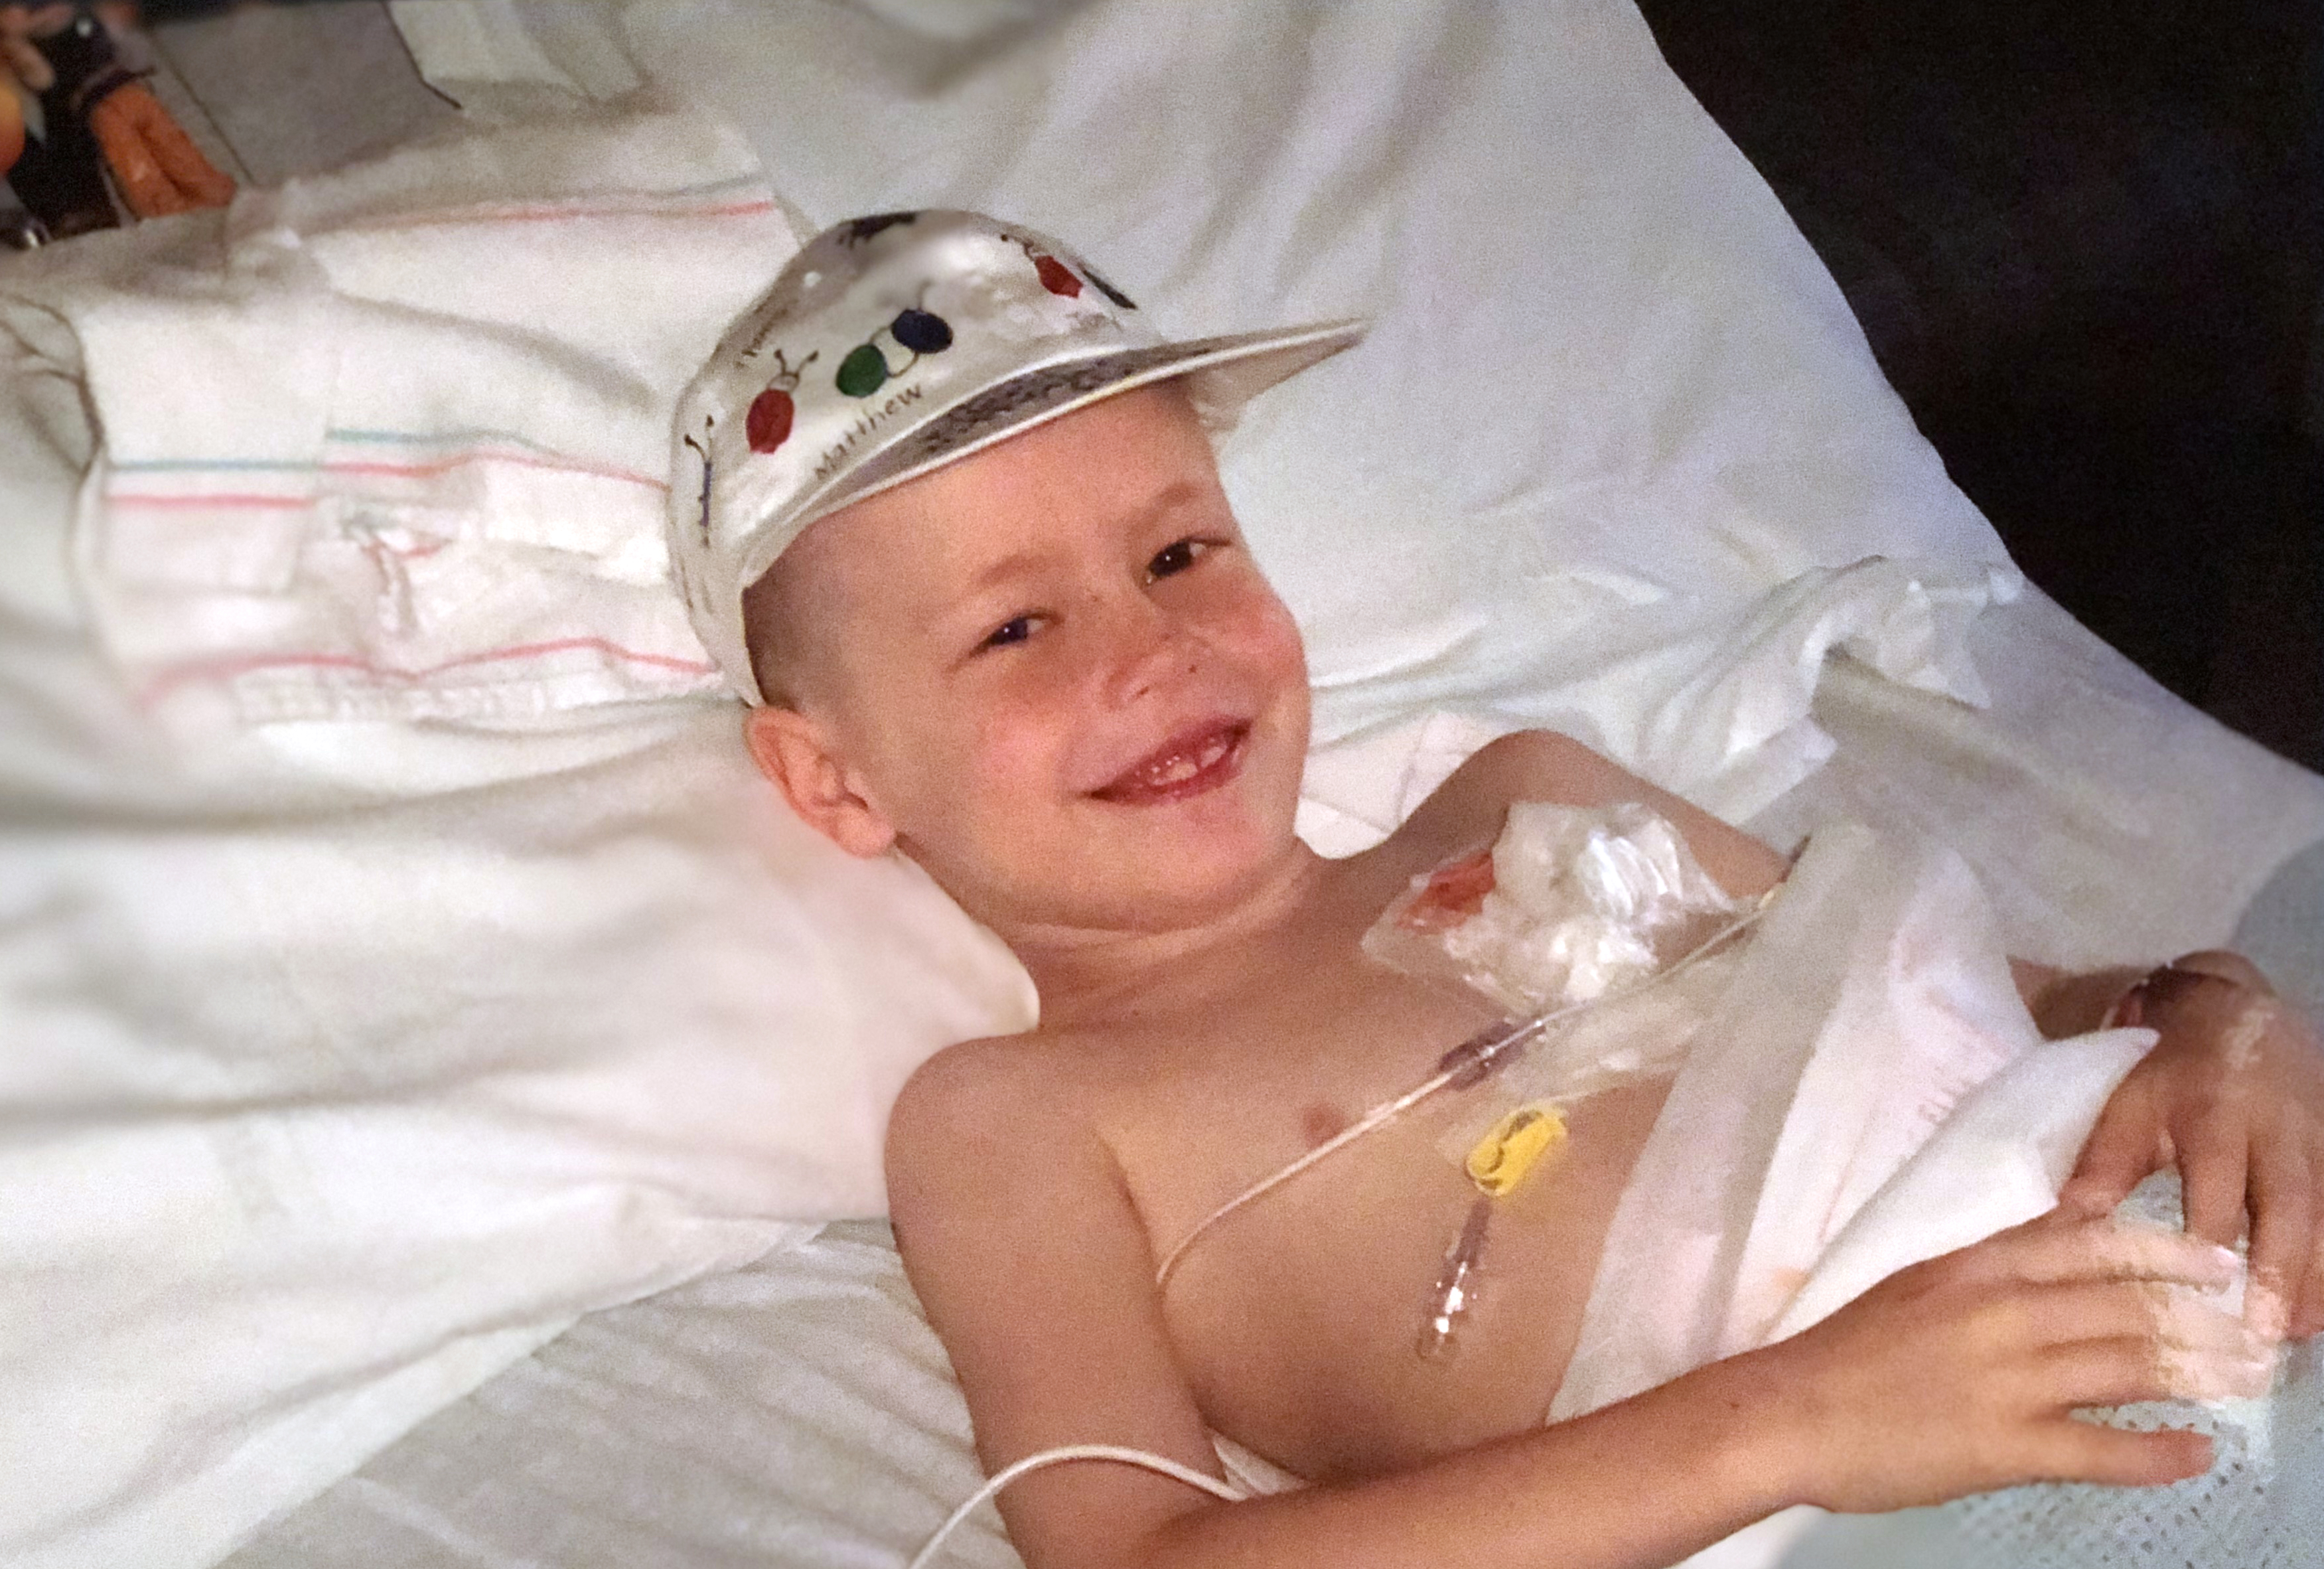 Cole Horne at age six smiles as he lies in a bed at Penn State Children's Hospital bed. He is wearing a silk baseball cap and has a port taped to his chest.